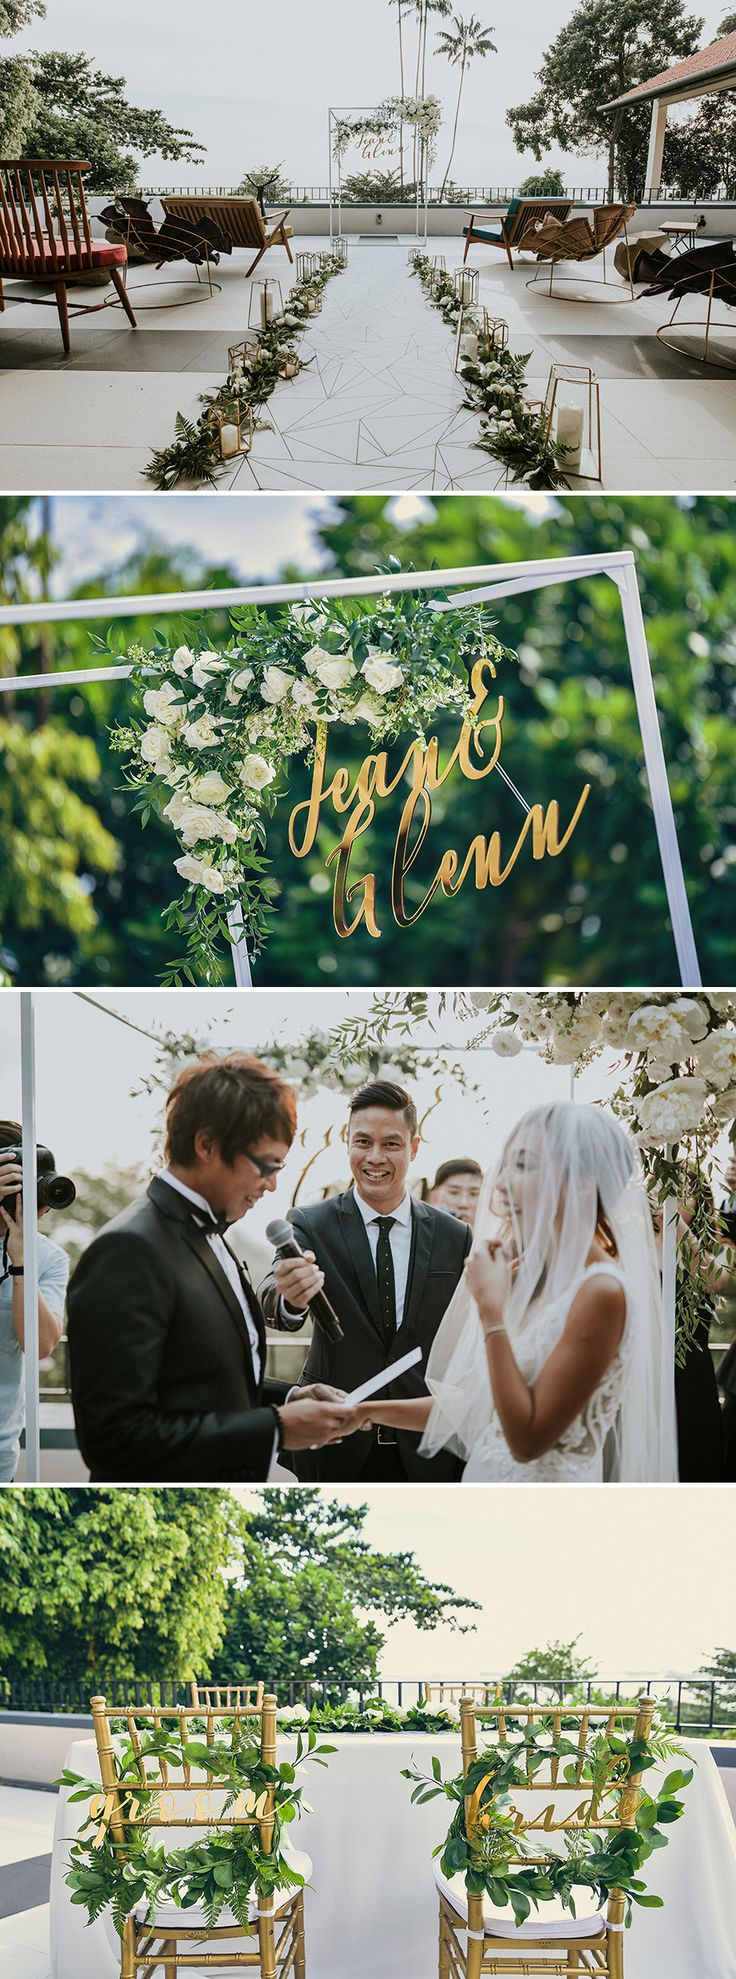 Gorgeous gold calligraphy from The Workroom to go with greenery and white rose decor for the perfect place to say your wedding vows // Familiar voices on Singapore's radio waves, DJs Glenn Ong and Jean Danker, recently said their vows in a cliff top ceremony overlooking the South China Sea at Sofitel Singapore Sentosa Resort & Spa.